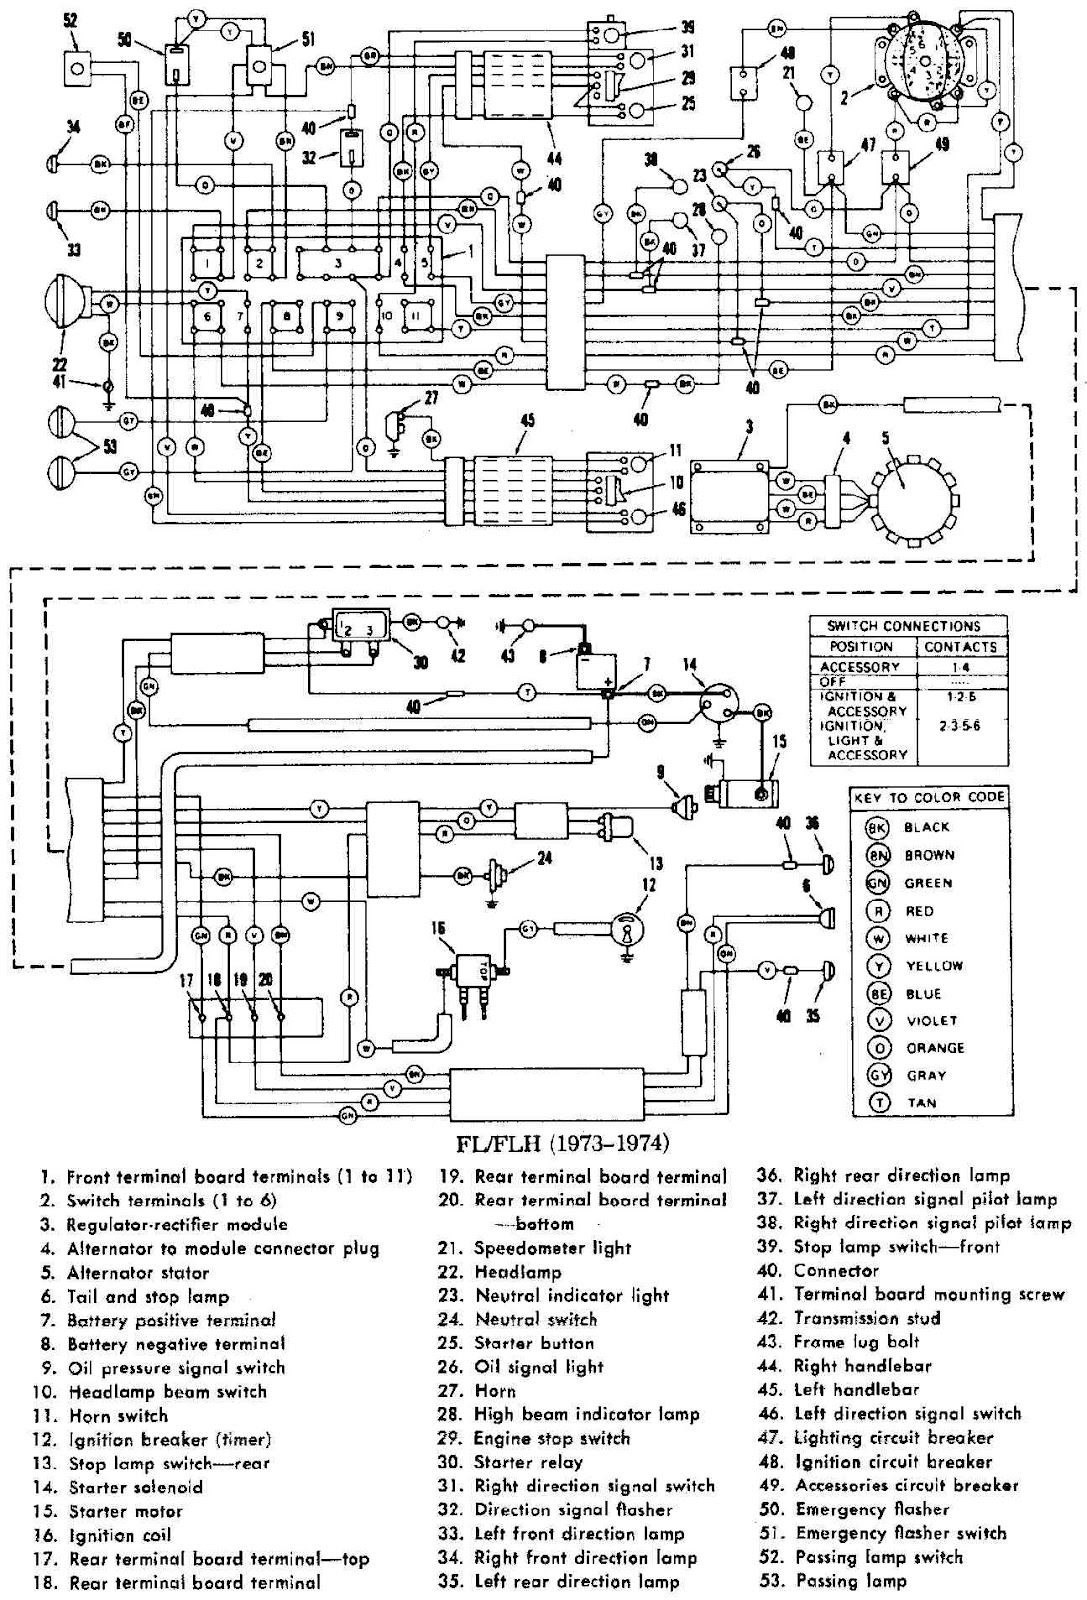 1973 Shovelhead Wiring Diagram - Wiring Diagram Post on motorcycle led turn signals, motorcycle turn signal speaker, motorcycle wiring schematics, simple turn signal diagram, motorcycle trailer wiring, motorcycle signal lights, gm turn signal switch diagram, motorcycle hand signals, motorcycle ignition wiring, motorcycle turn signal installation, motorcycle diagram with label, turn signal schematic diagram, motorcycle coil wiring, motorcycle mini turn signals, motorcycle turn signal wiring kit, motorcycle turn signal parts, motorcycle turn signal connector, basic motorcycle diagram, motorcycle turn signal circuit, motorcycle turn signal bracket,